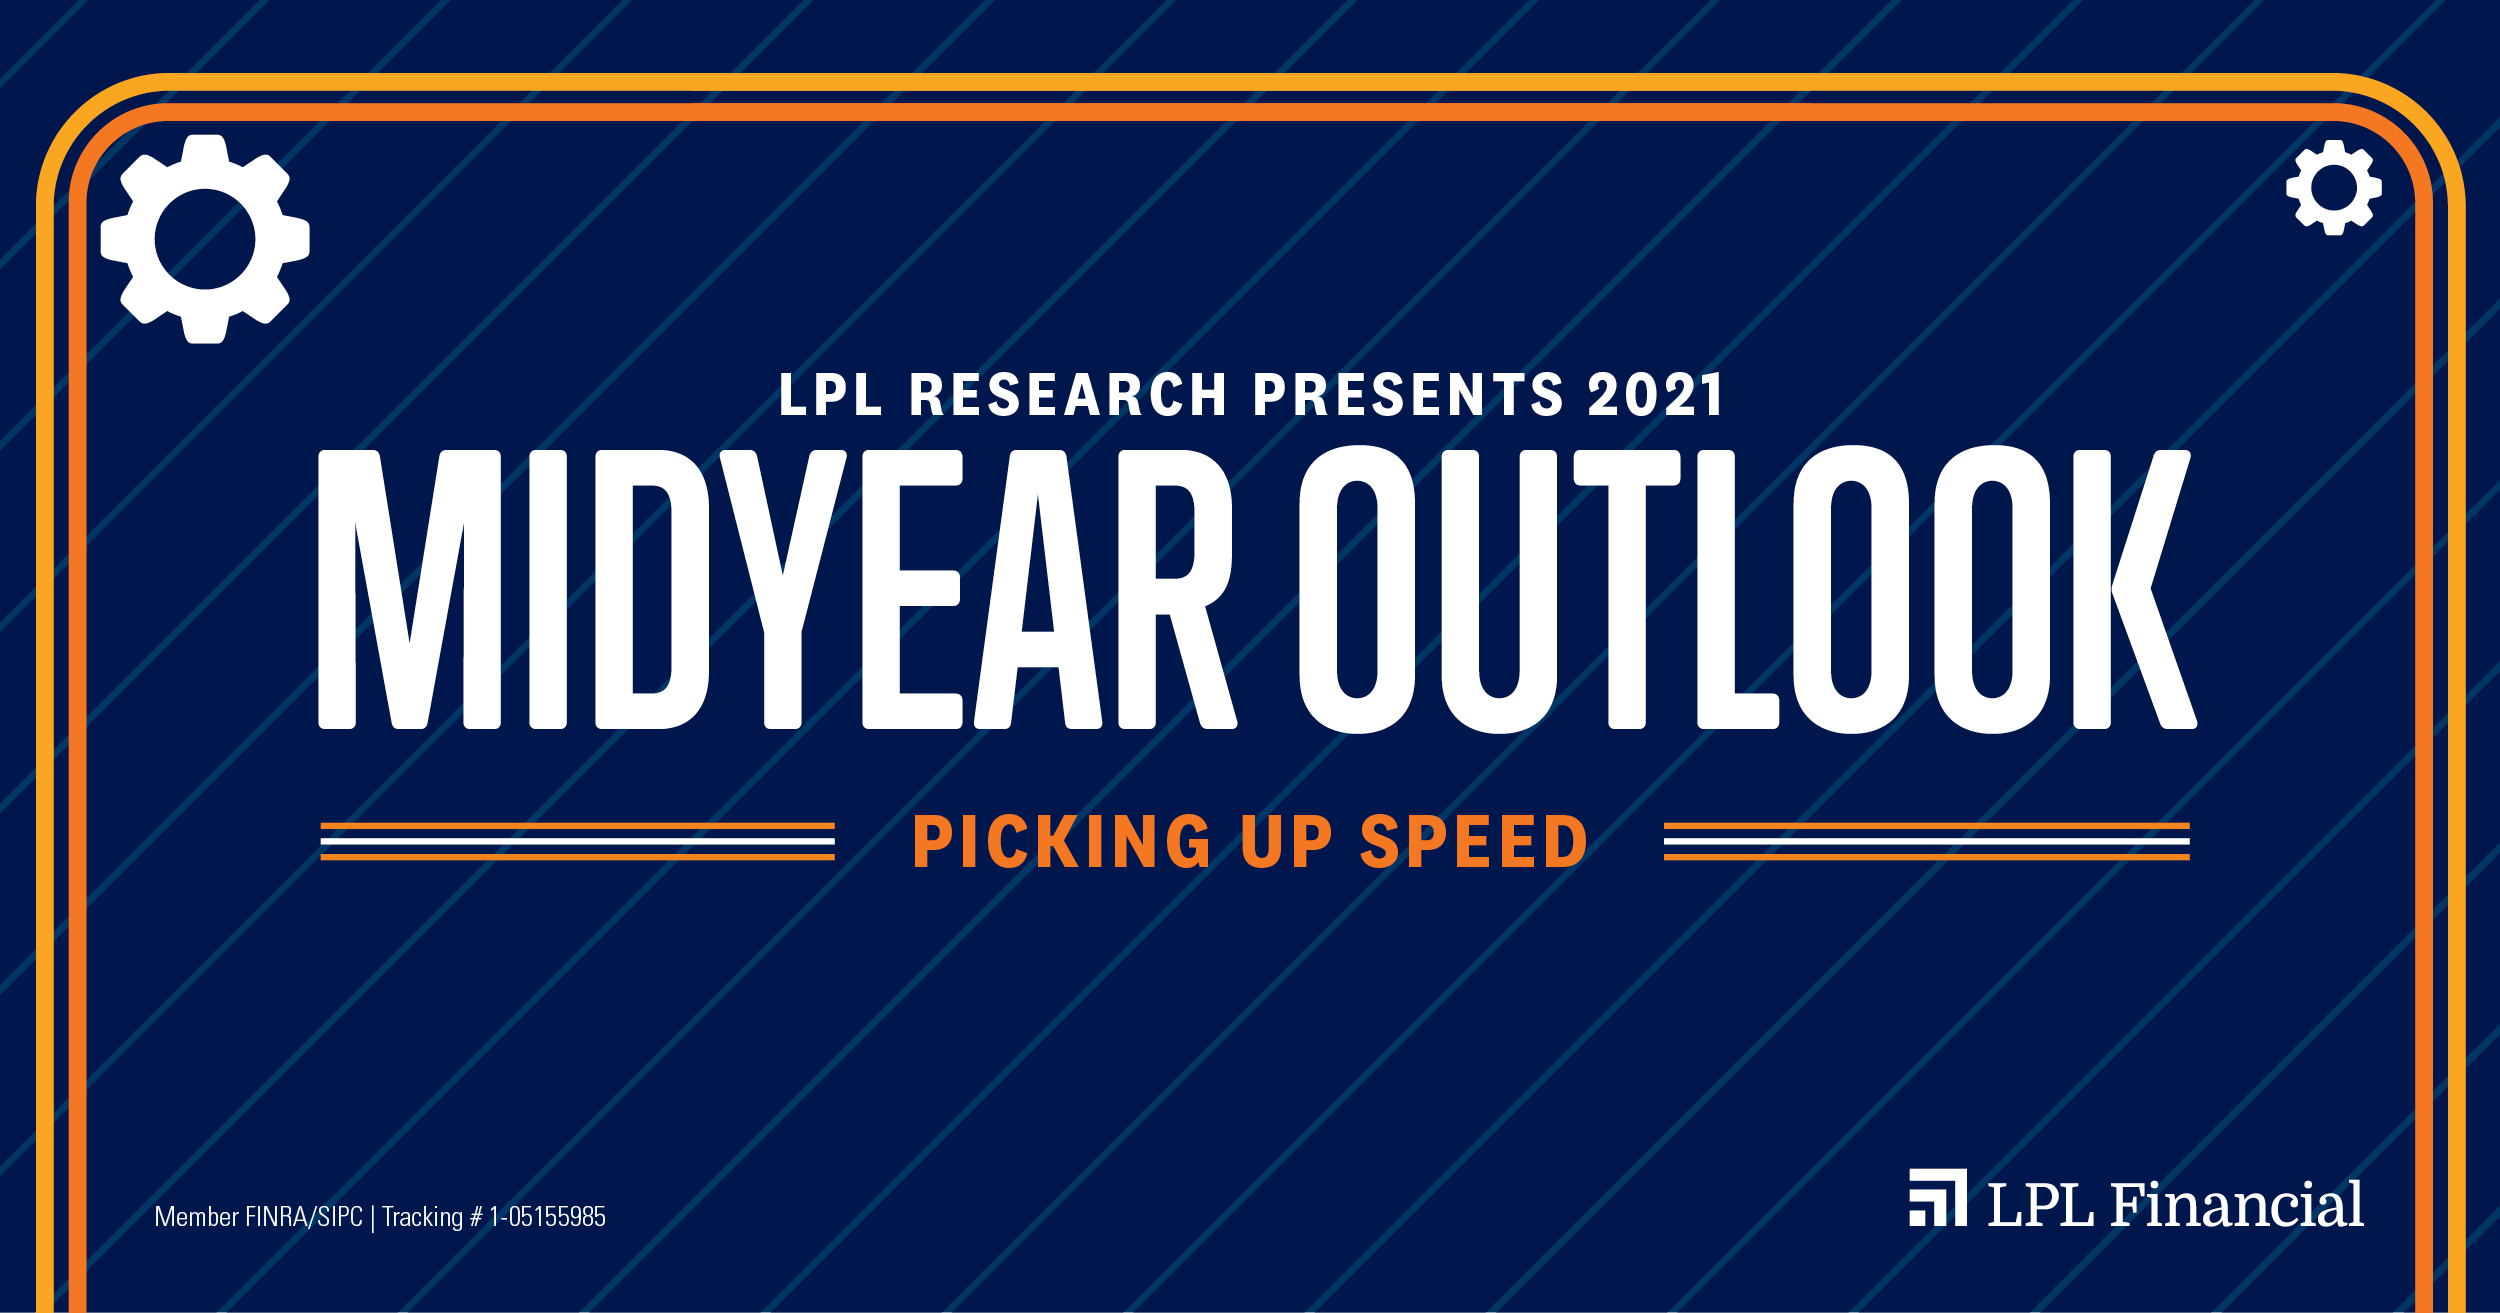 2021 LPL Midyear Outlook Graphic